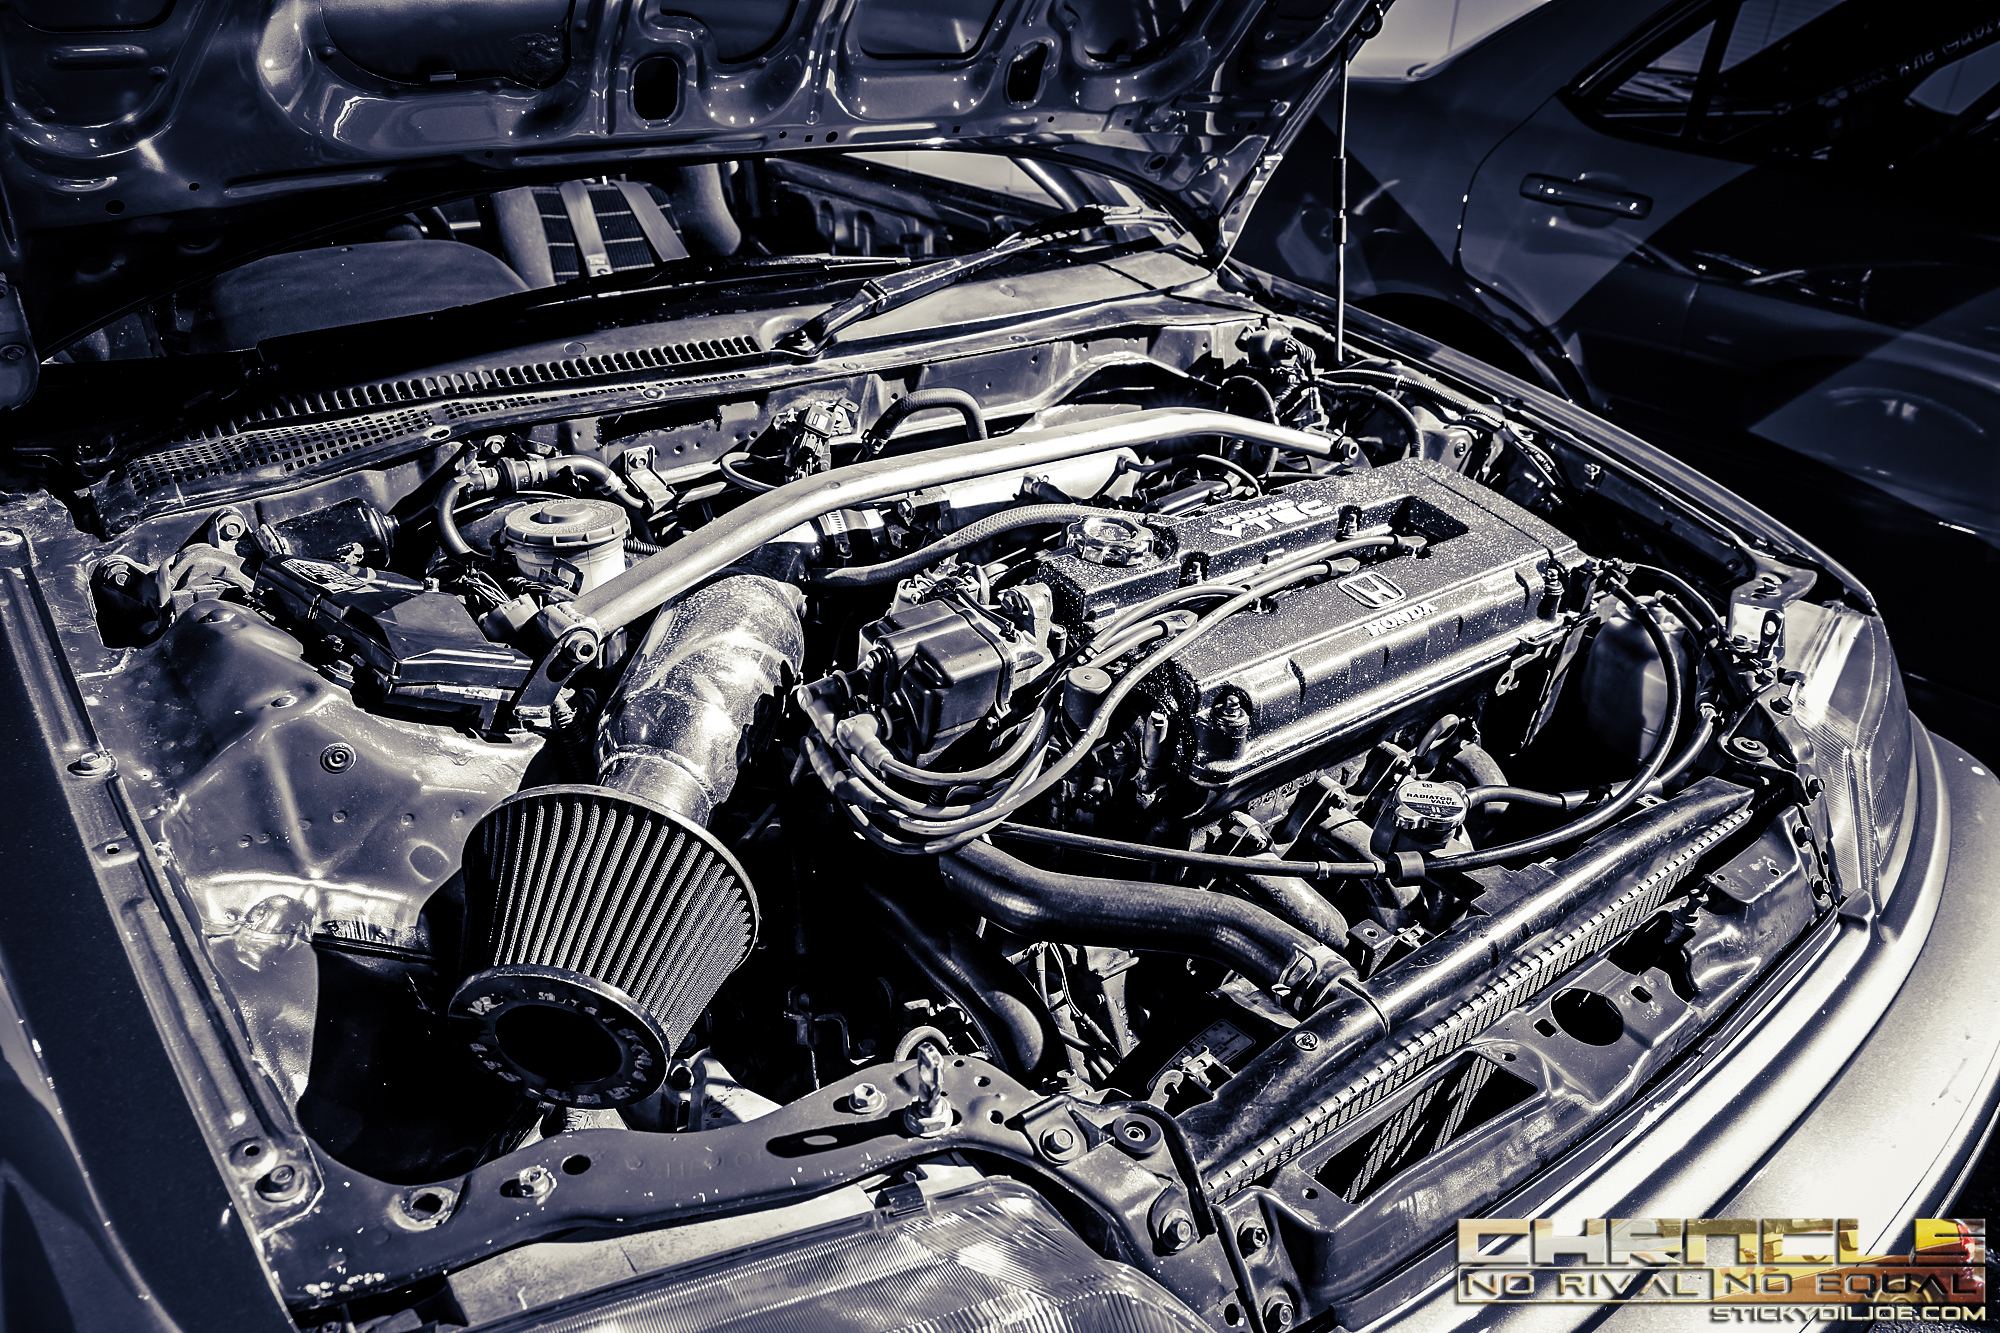 B16A engine being used in an EF Civic hatchback from TOP GUN Racing.